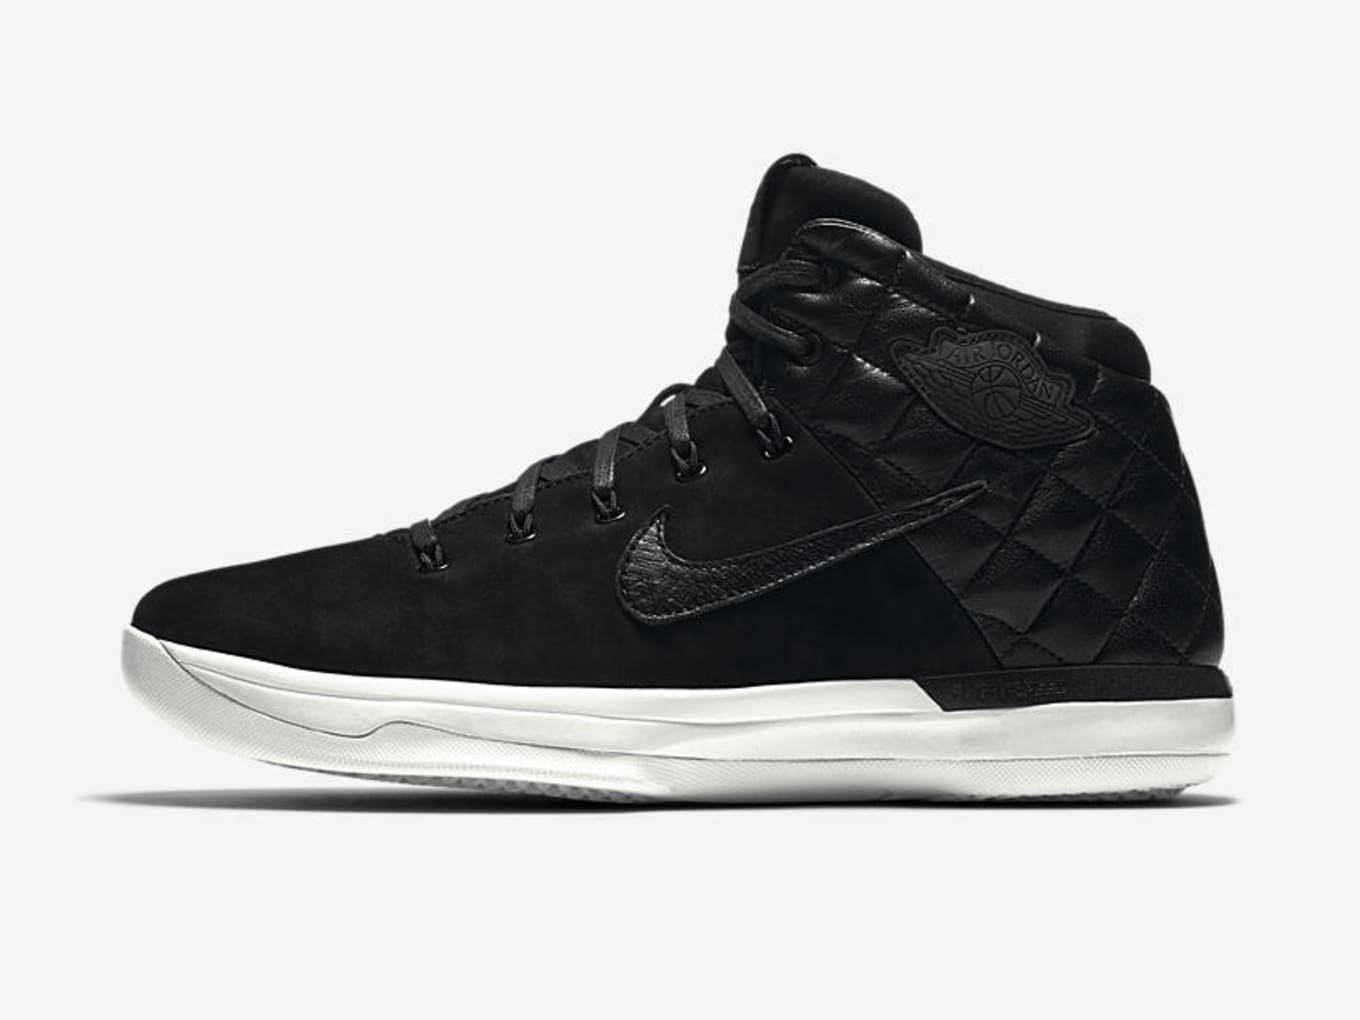 175d2162eaf The Air Jordan 31 Gets a Premium Upgrade for Cyber Monday. Nicknamed the